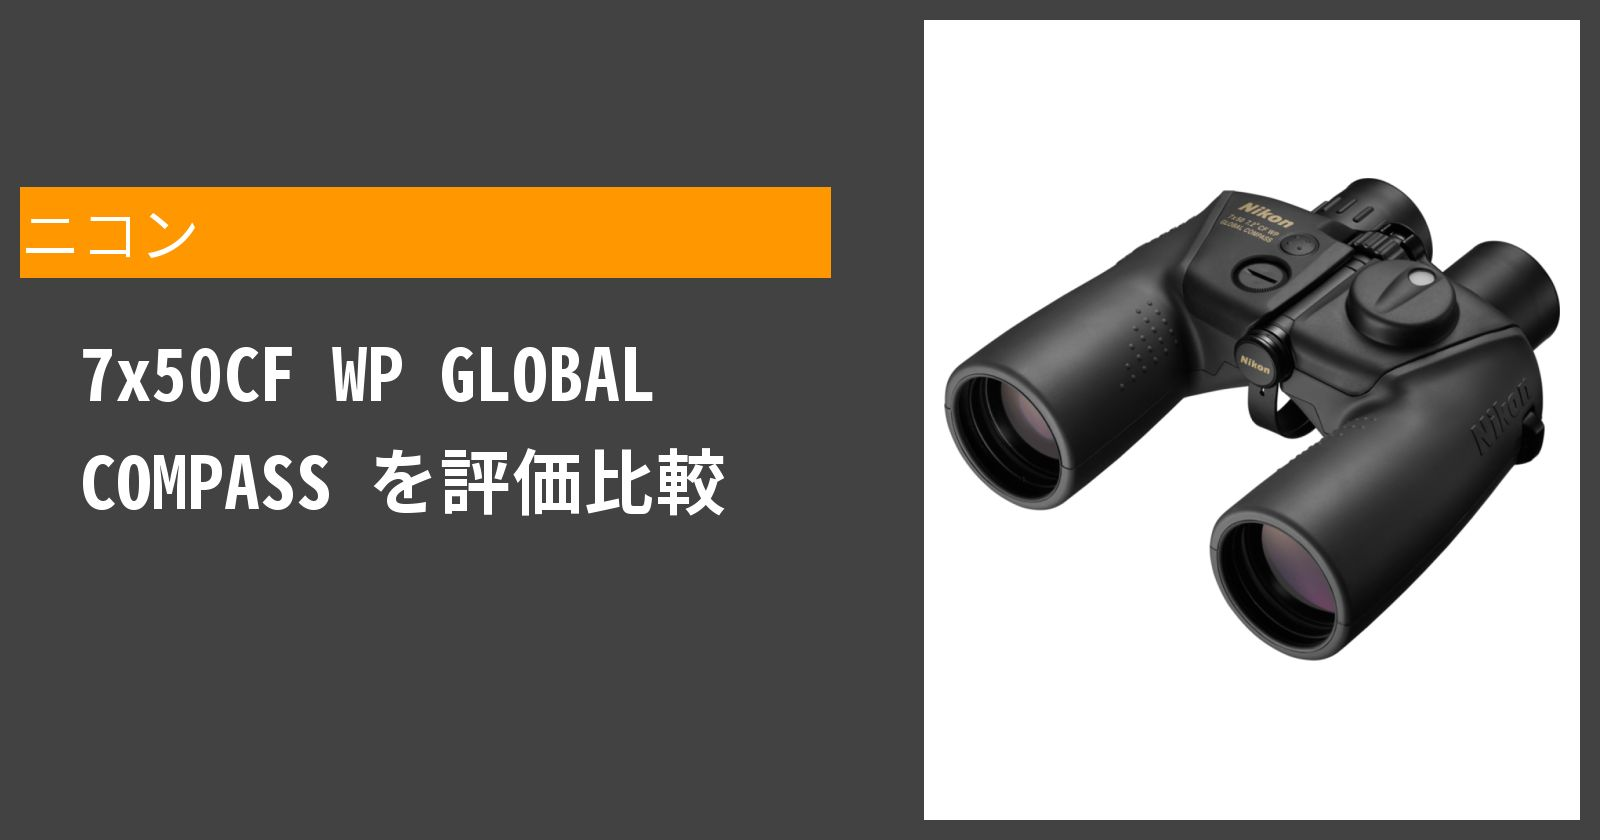 7x50CF WP GLOBAL COMPASSを徹底評価